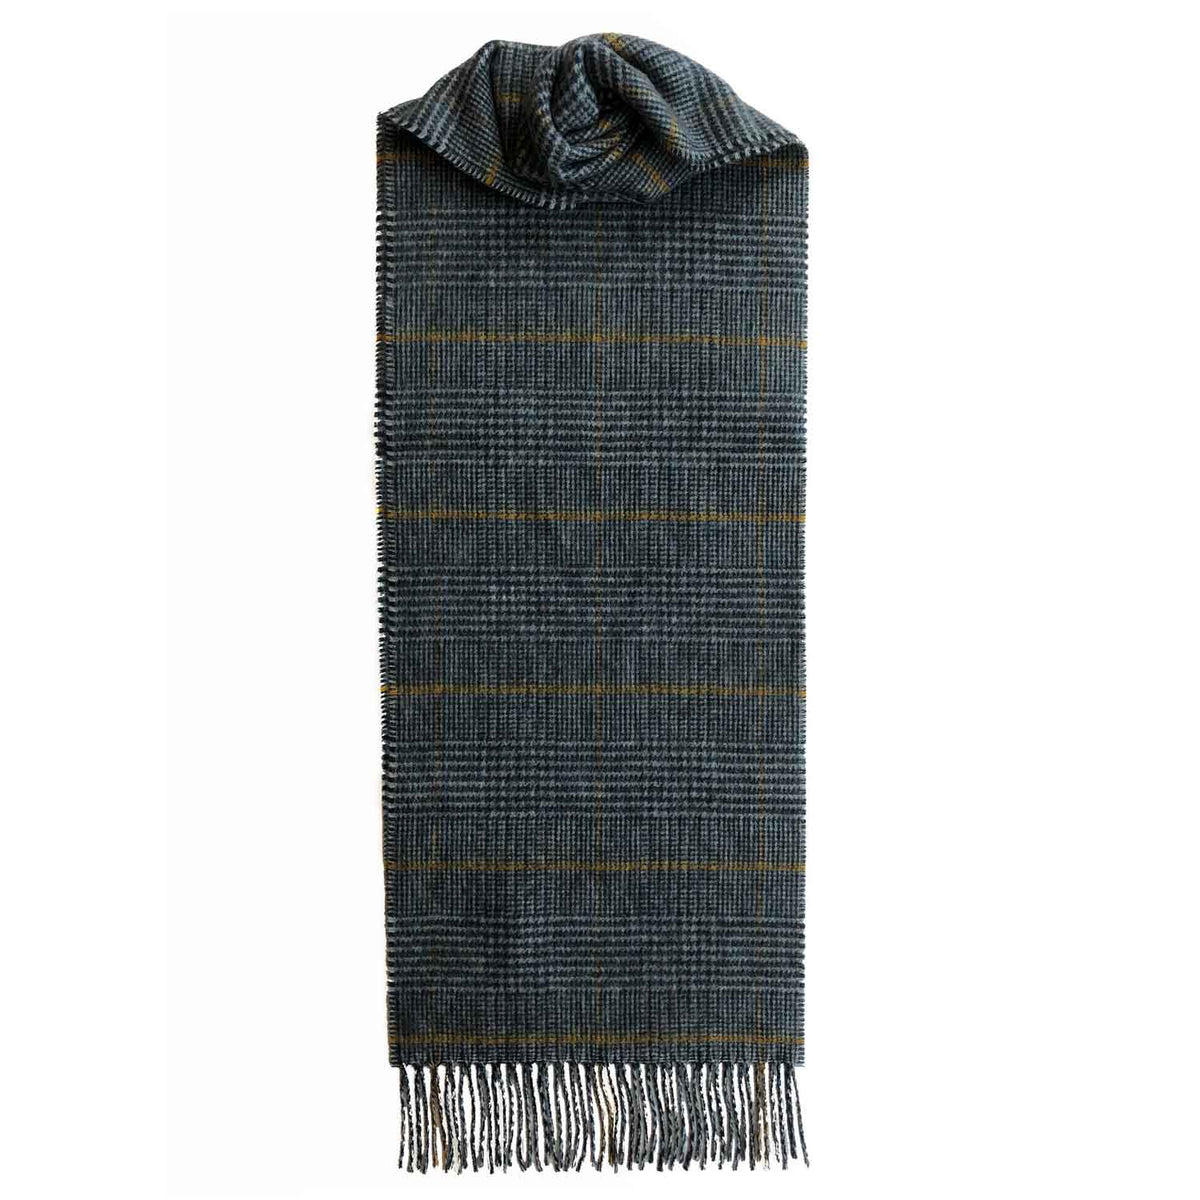 Lomond Cashmere | Grey Yellow | Check Cashmere Scarf With Fringes | Made in Scotland | Shop at The Cashmere Choice | London